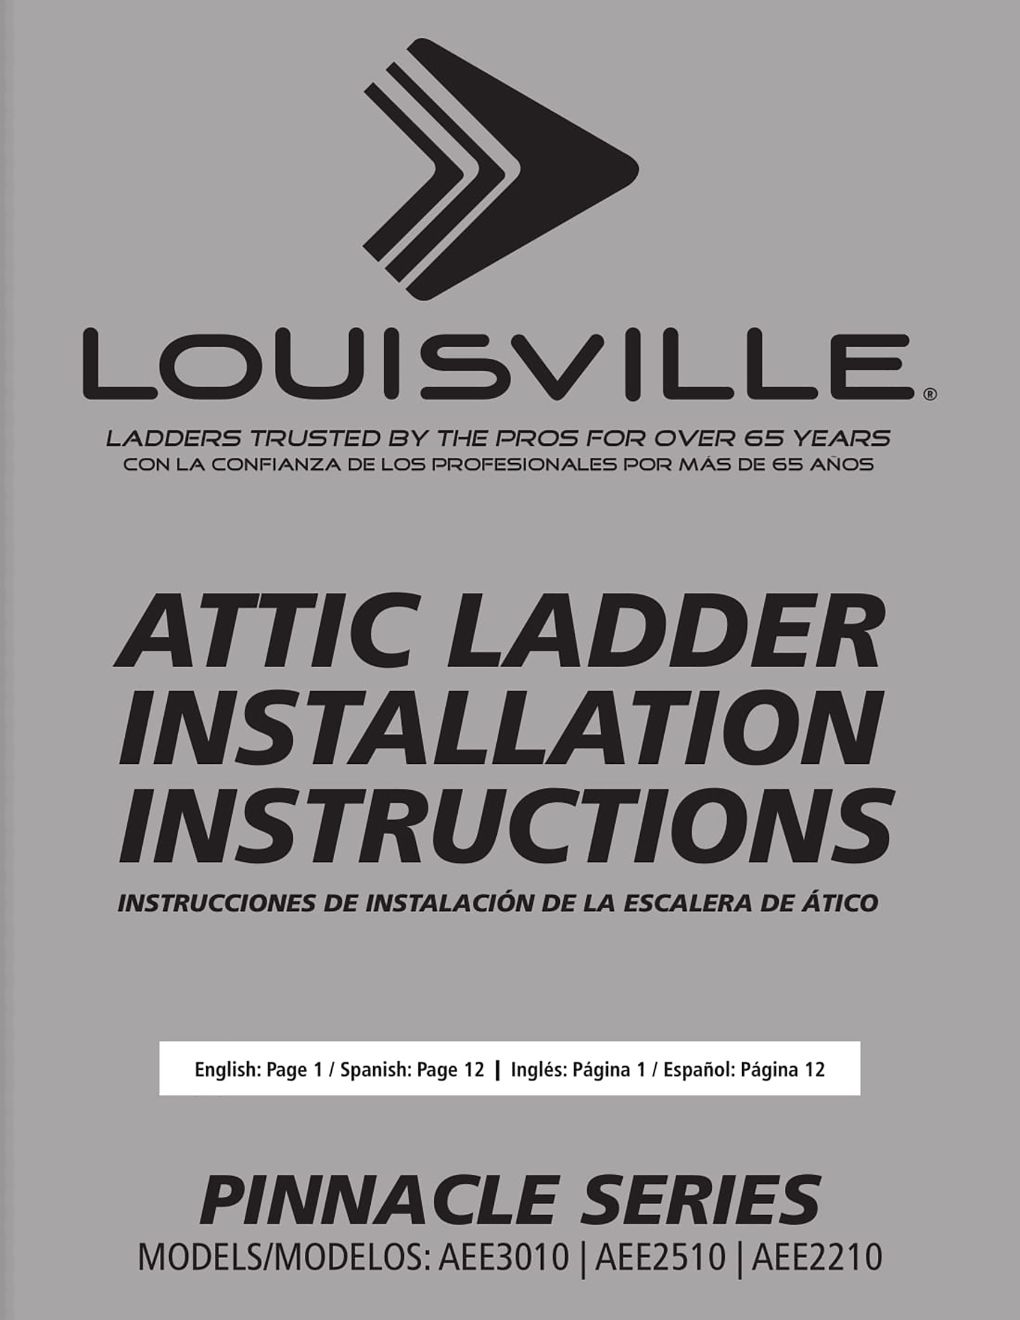 AEE2210 and AEE2510 Attic Ladders Installation Instructions Marketing Material Image